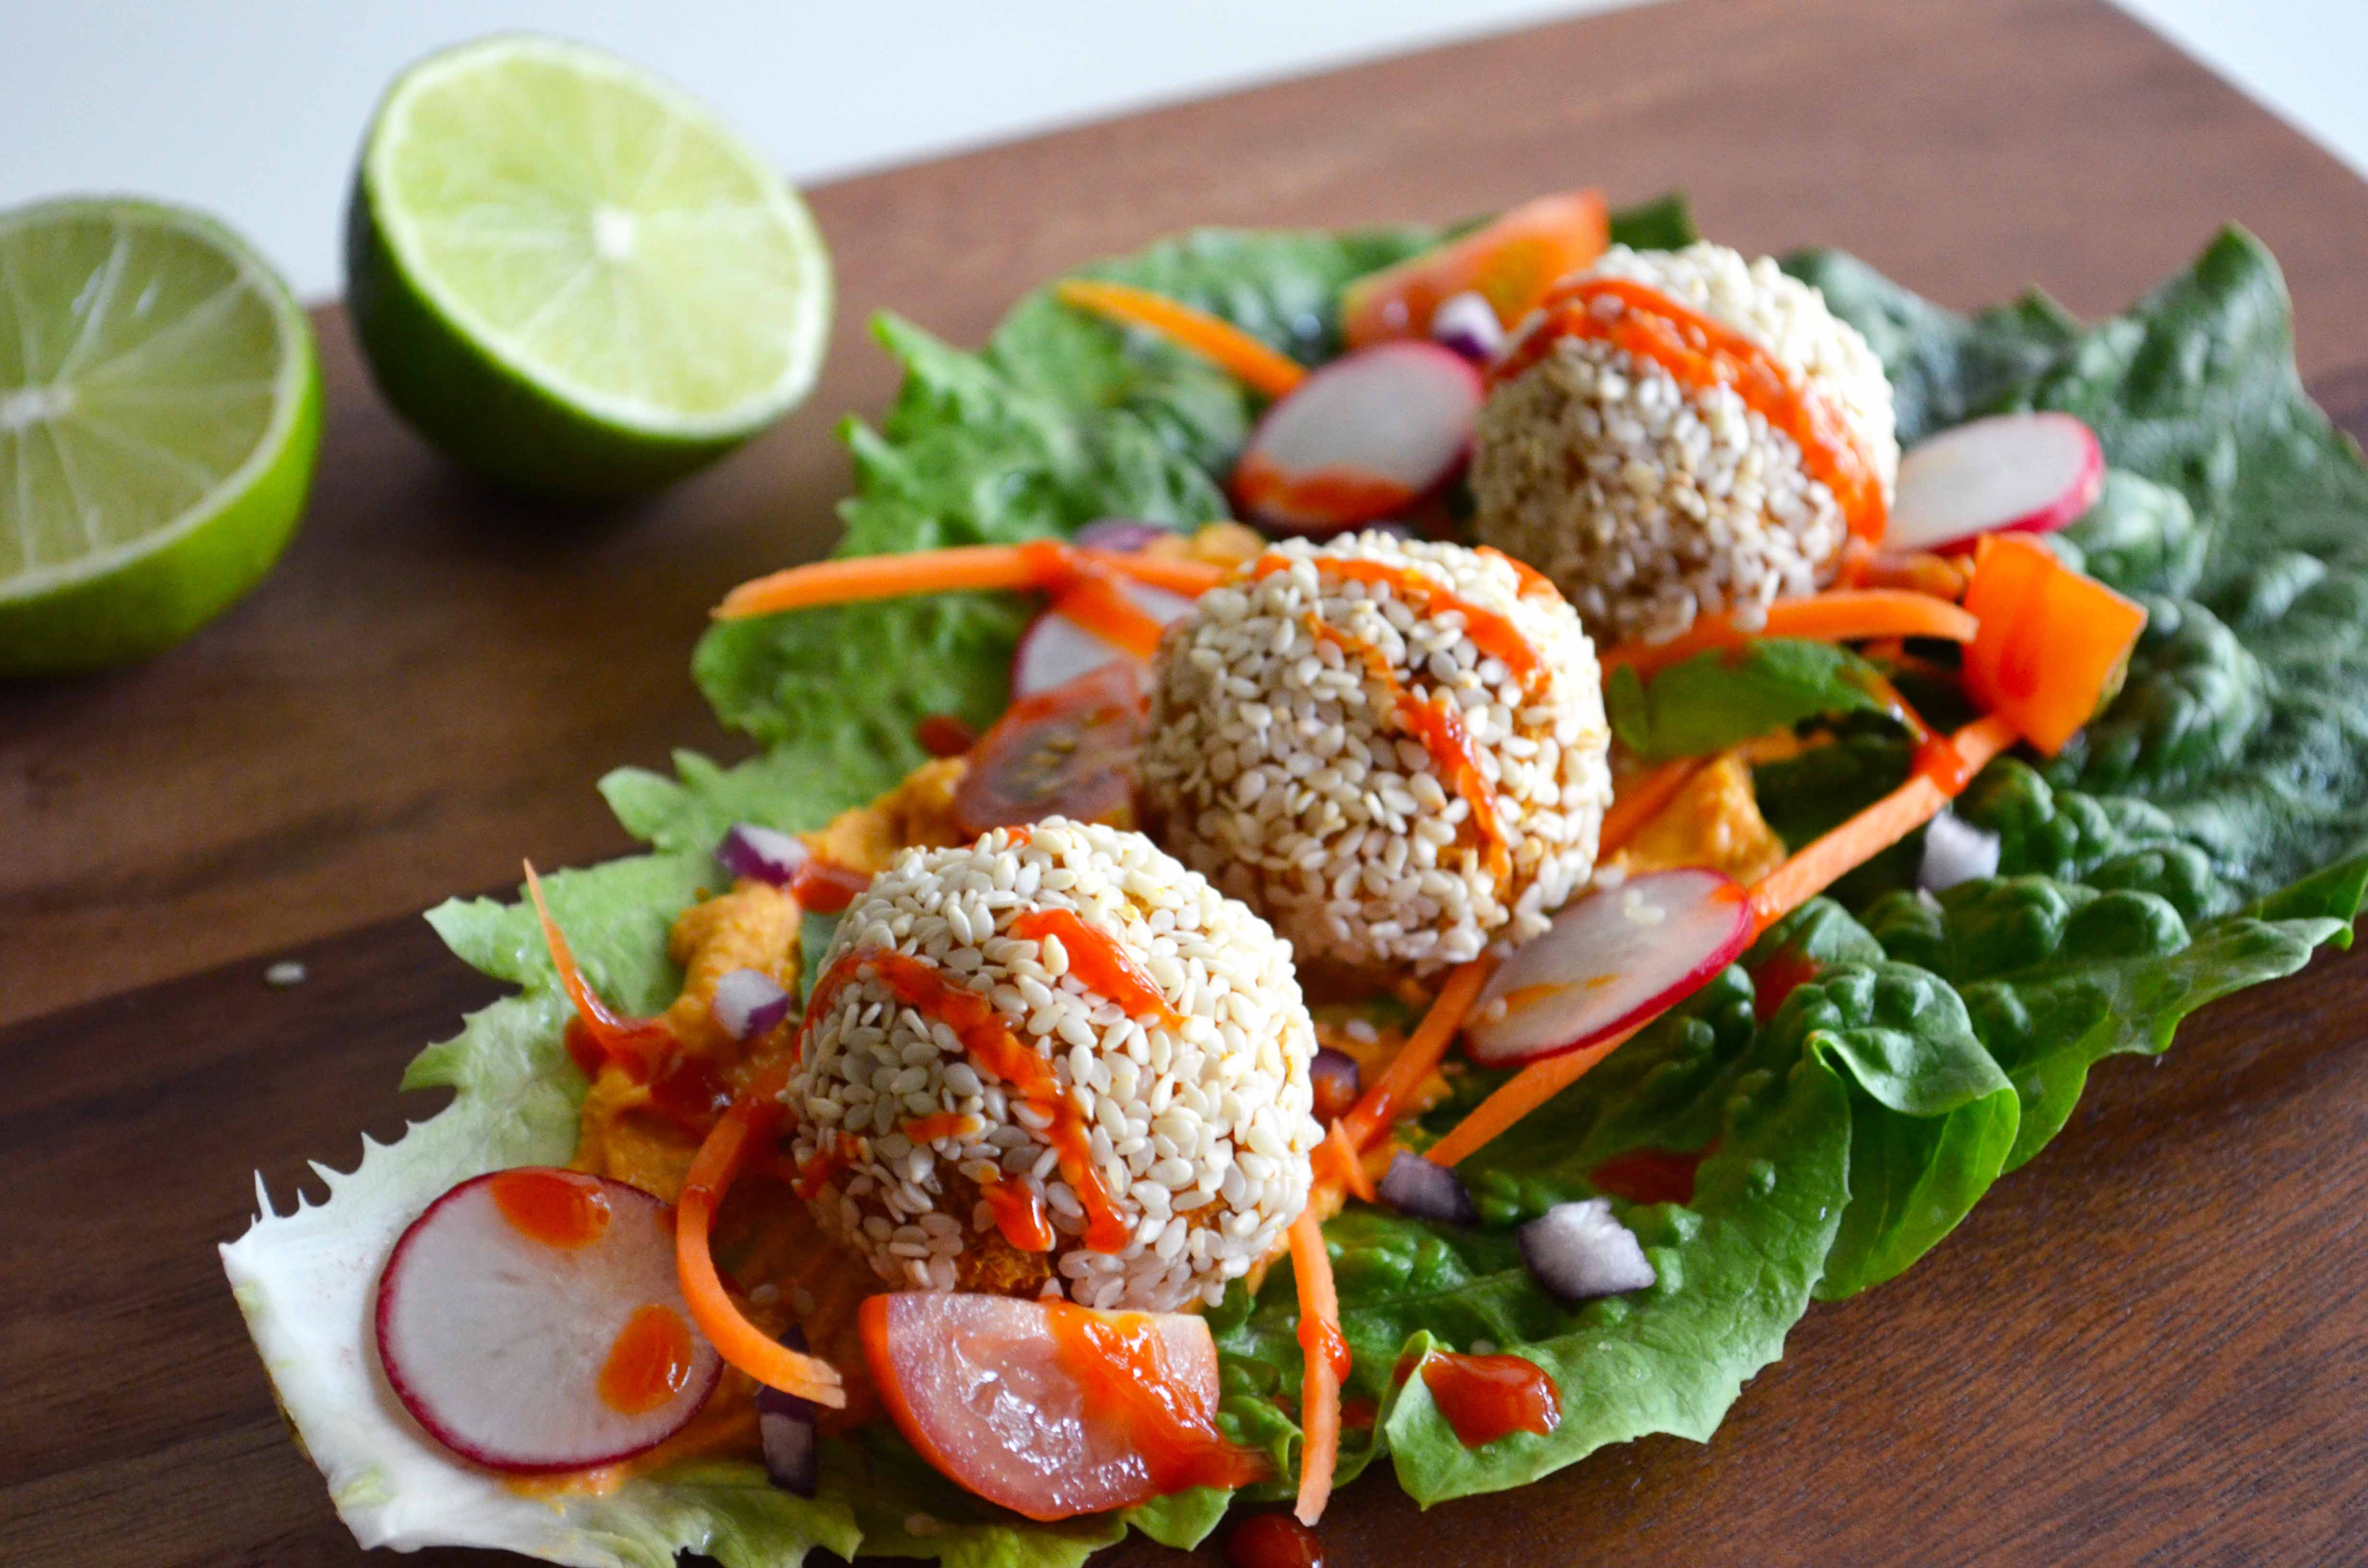 Sweet Potato and Lemon Baked Falafel